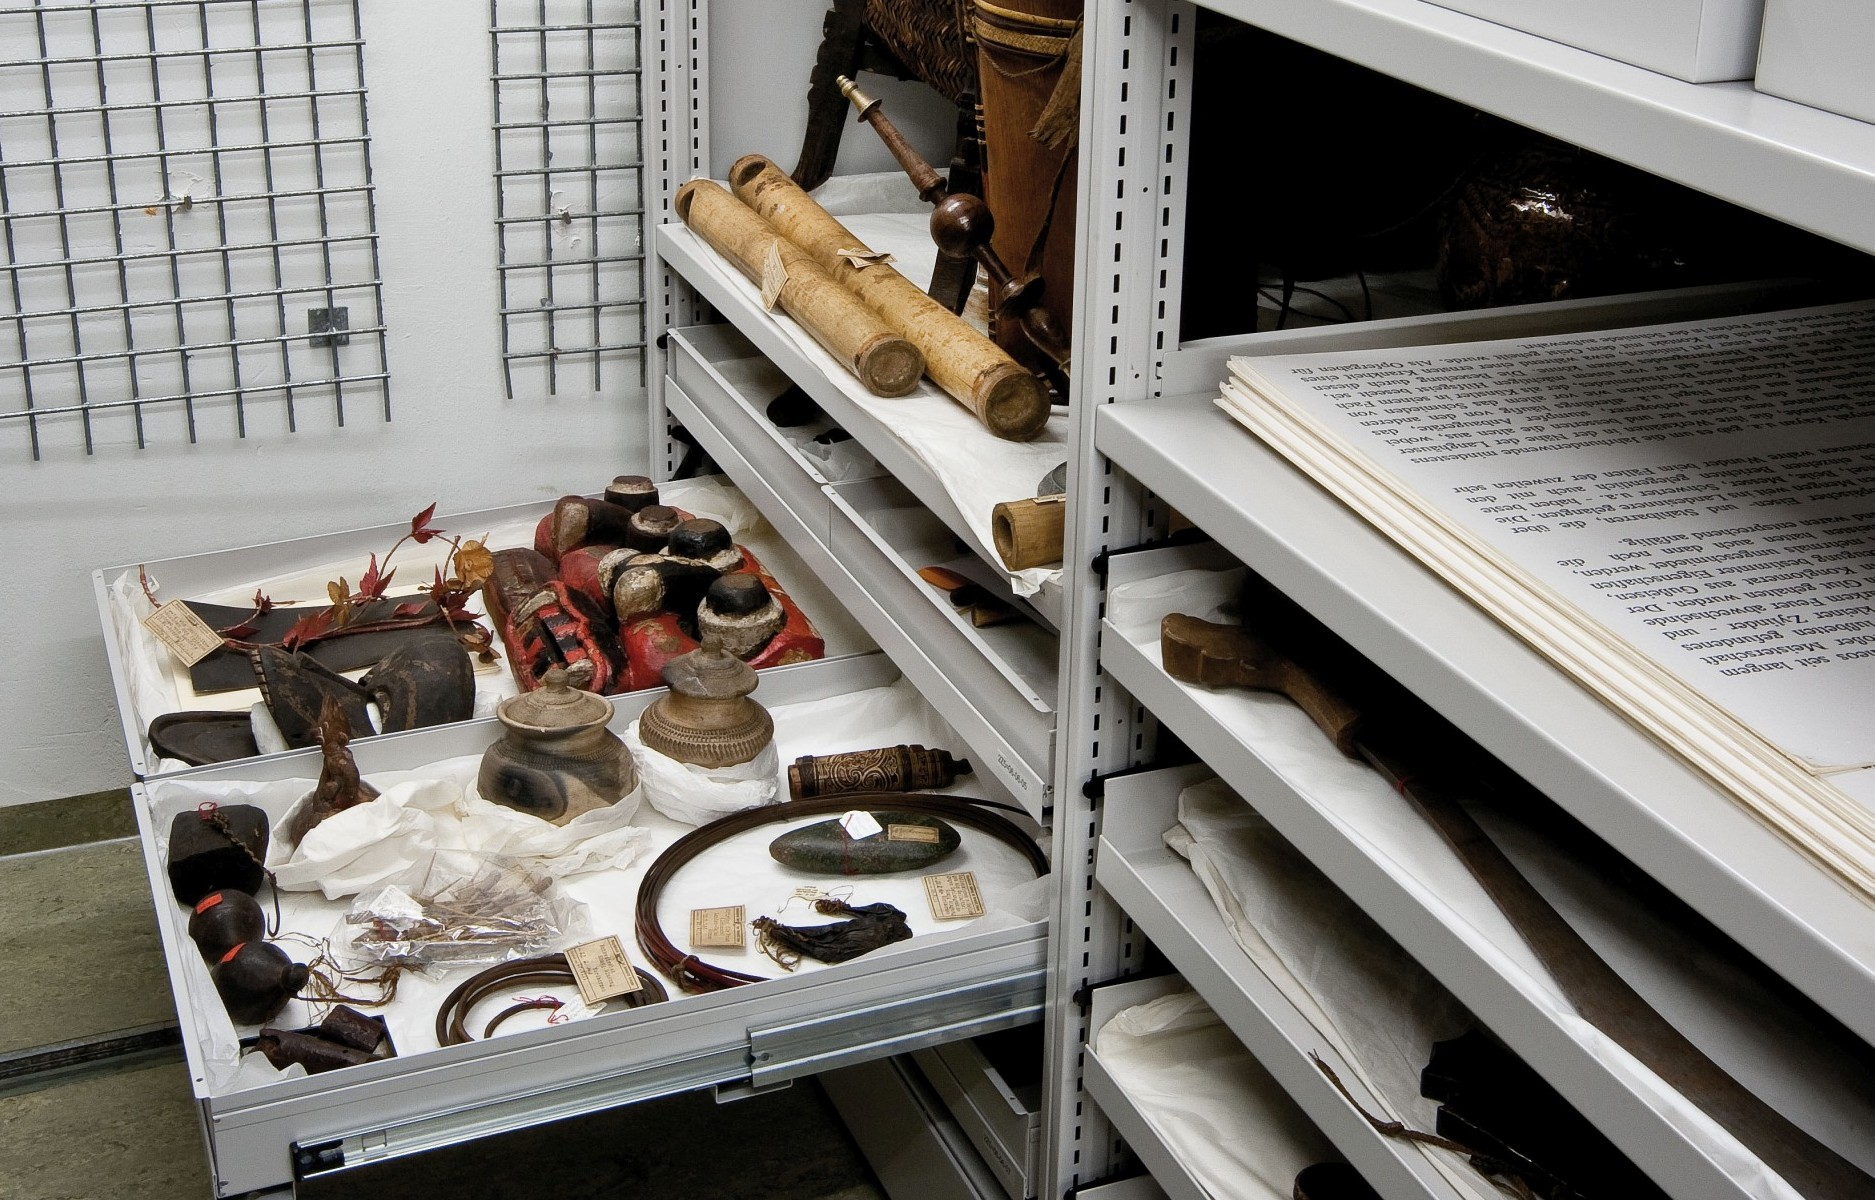 Objects from Borneo collected by the Ernst Friedrich Will in the Indonesia section of the store at the Five Continents Museum in Munich (Image: Marietta Weidner/Five Continents Museum)